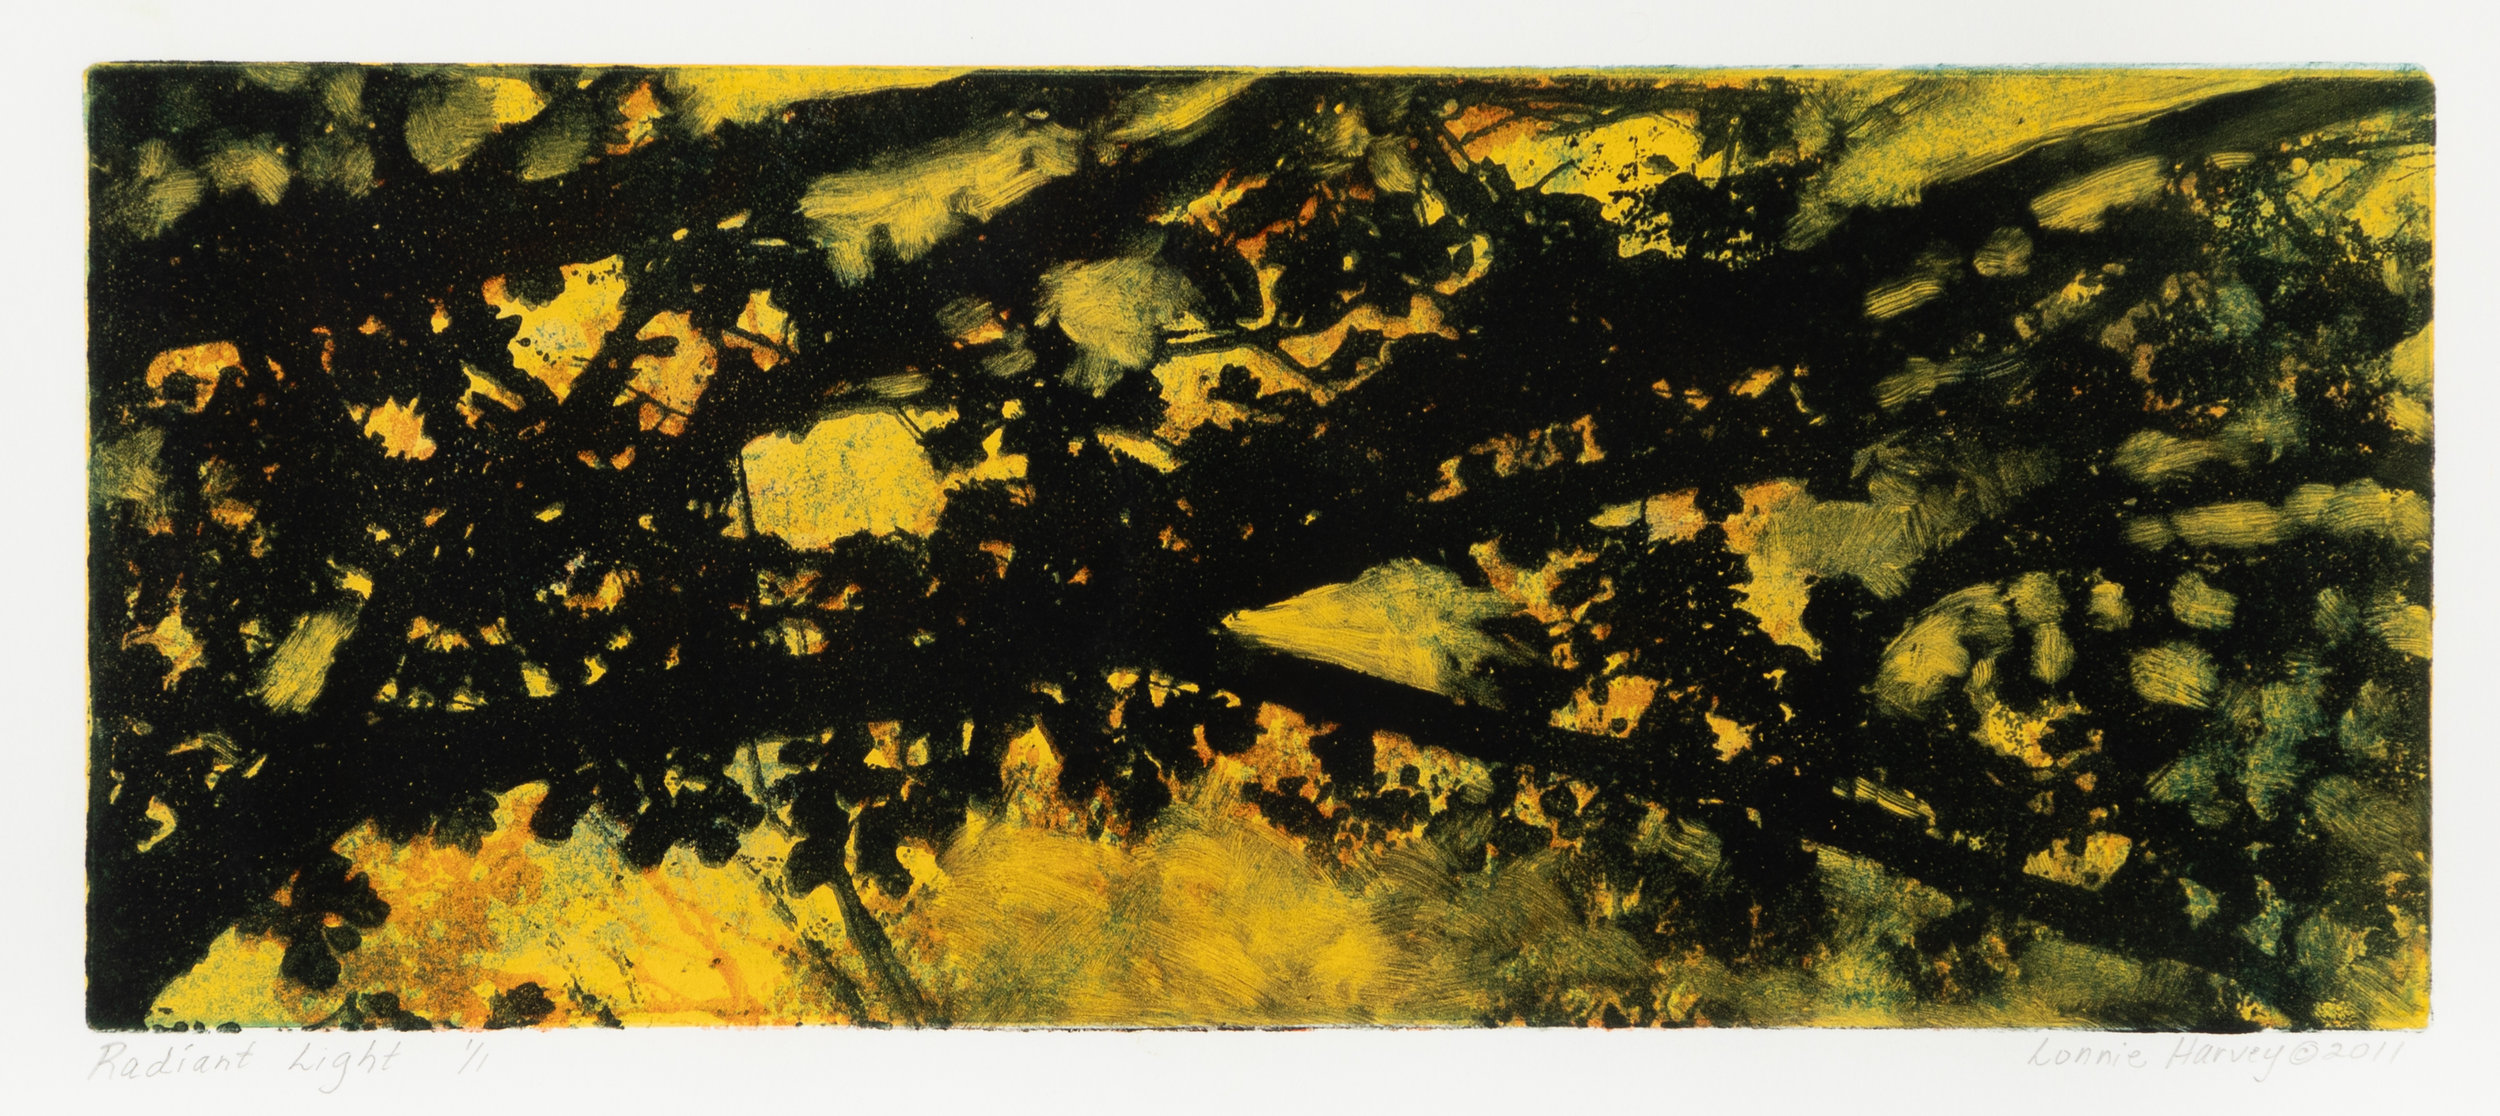 """Radiant Light"", monoprint, 14.75"" x 22.5"", $300 (framed)"